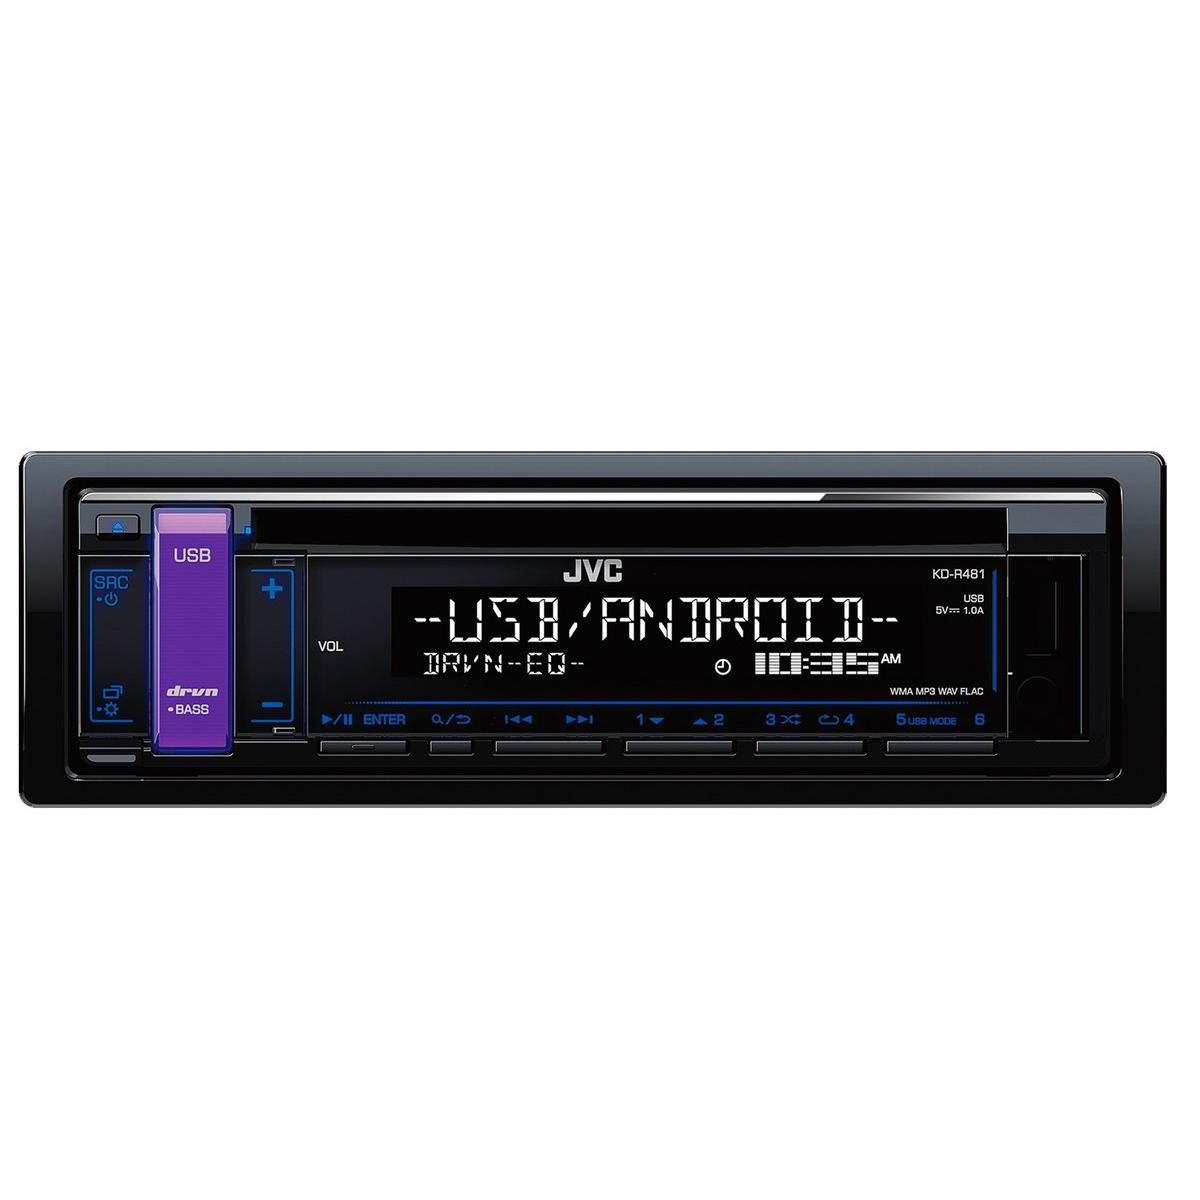 kd r471 cd receiver front usb aux input click here for image of jvc kd r471